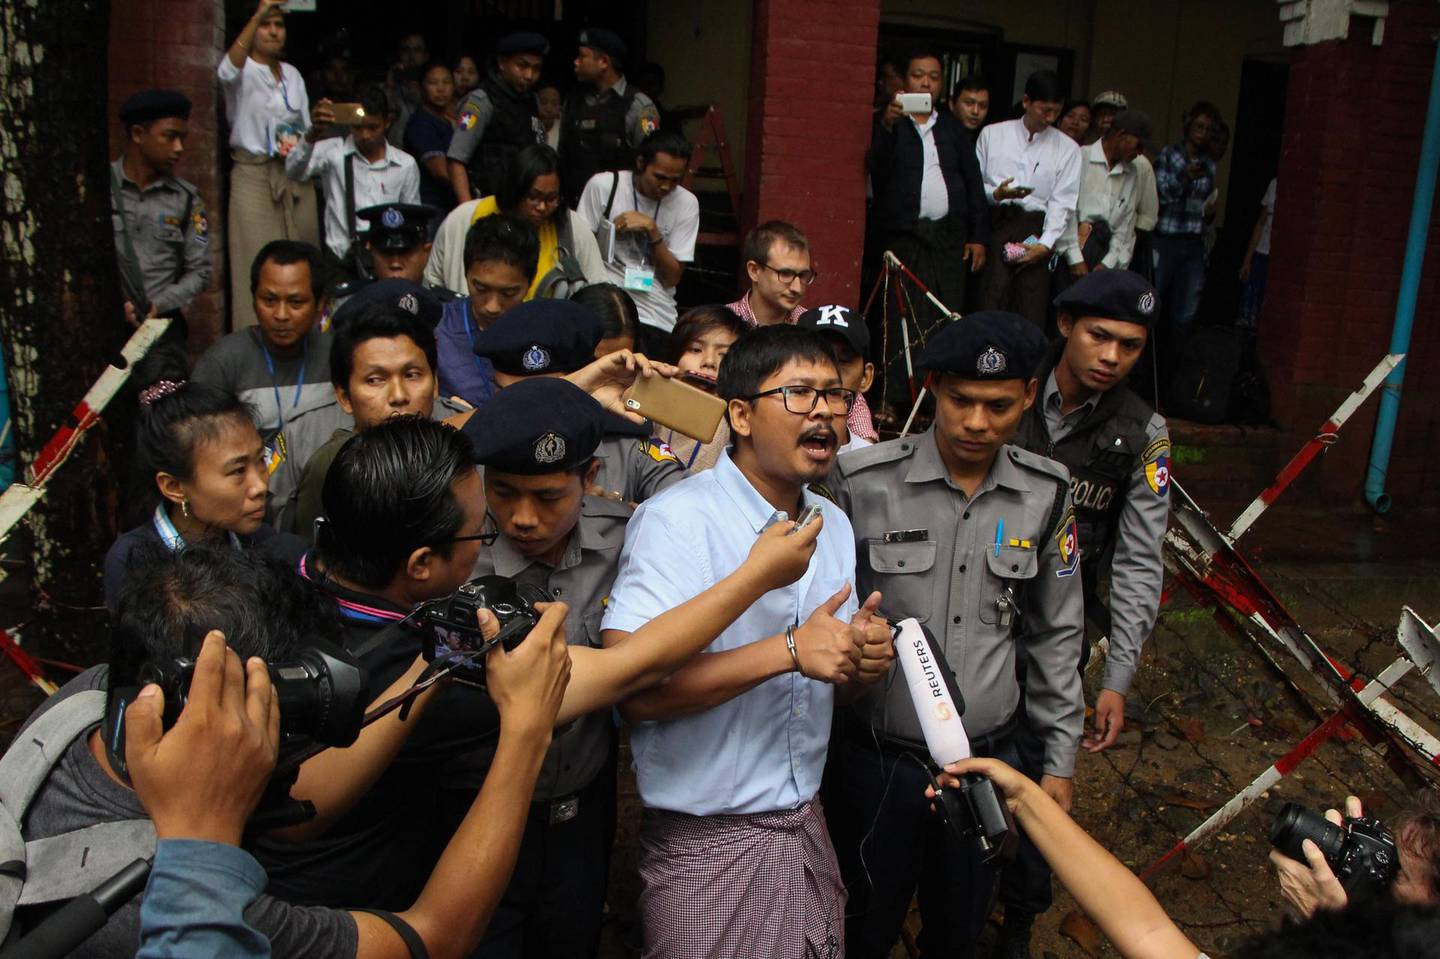 Detained Myanmar journalist Wa Lone (C) speaks to reporters while escorted by police to a court for his ongoing pre-trial hearing in Yangon on July 9, 2018. Two Reuters reporters accused of breaking Myanmar's draconian secrecy law during their reporting of the Rohingya crisis must face trial, a judge ruled on July 9, on a charge that carries up to 14 years in jail. / AFP / STR